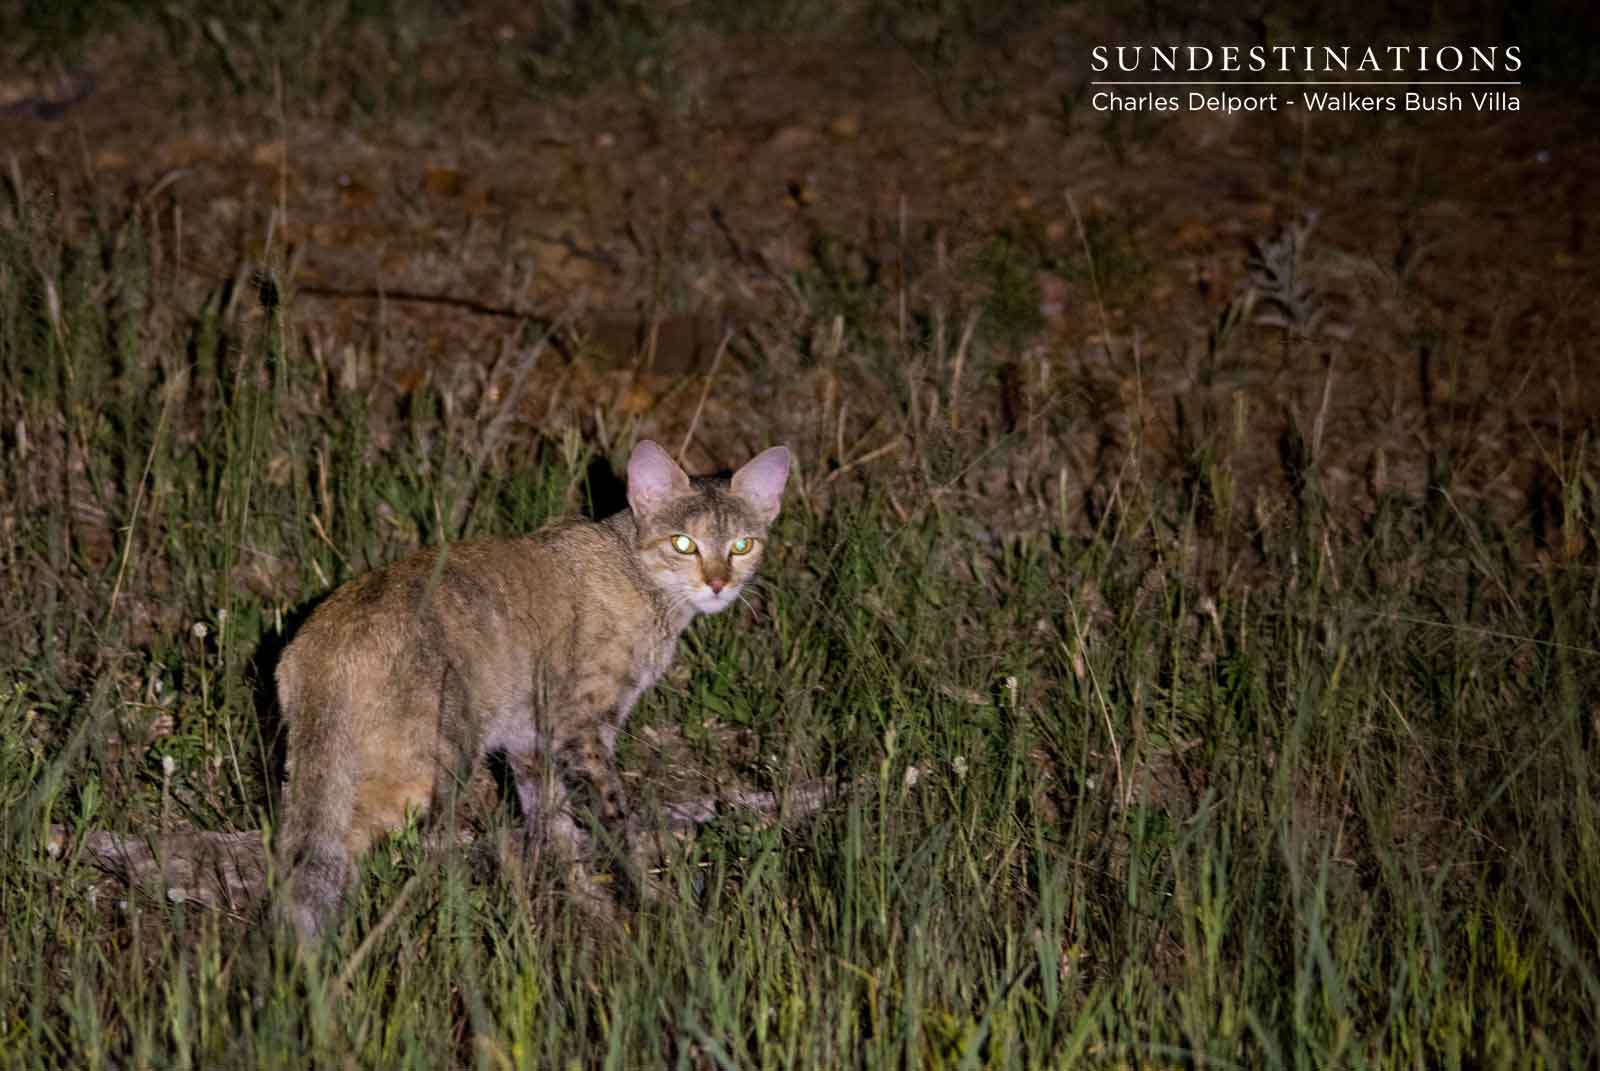 African Wild Cats at Walkers Bush Villa